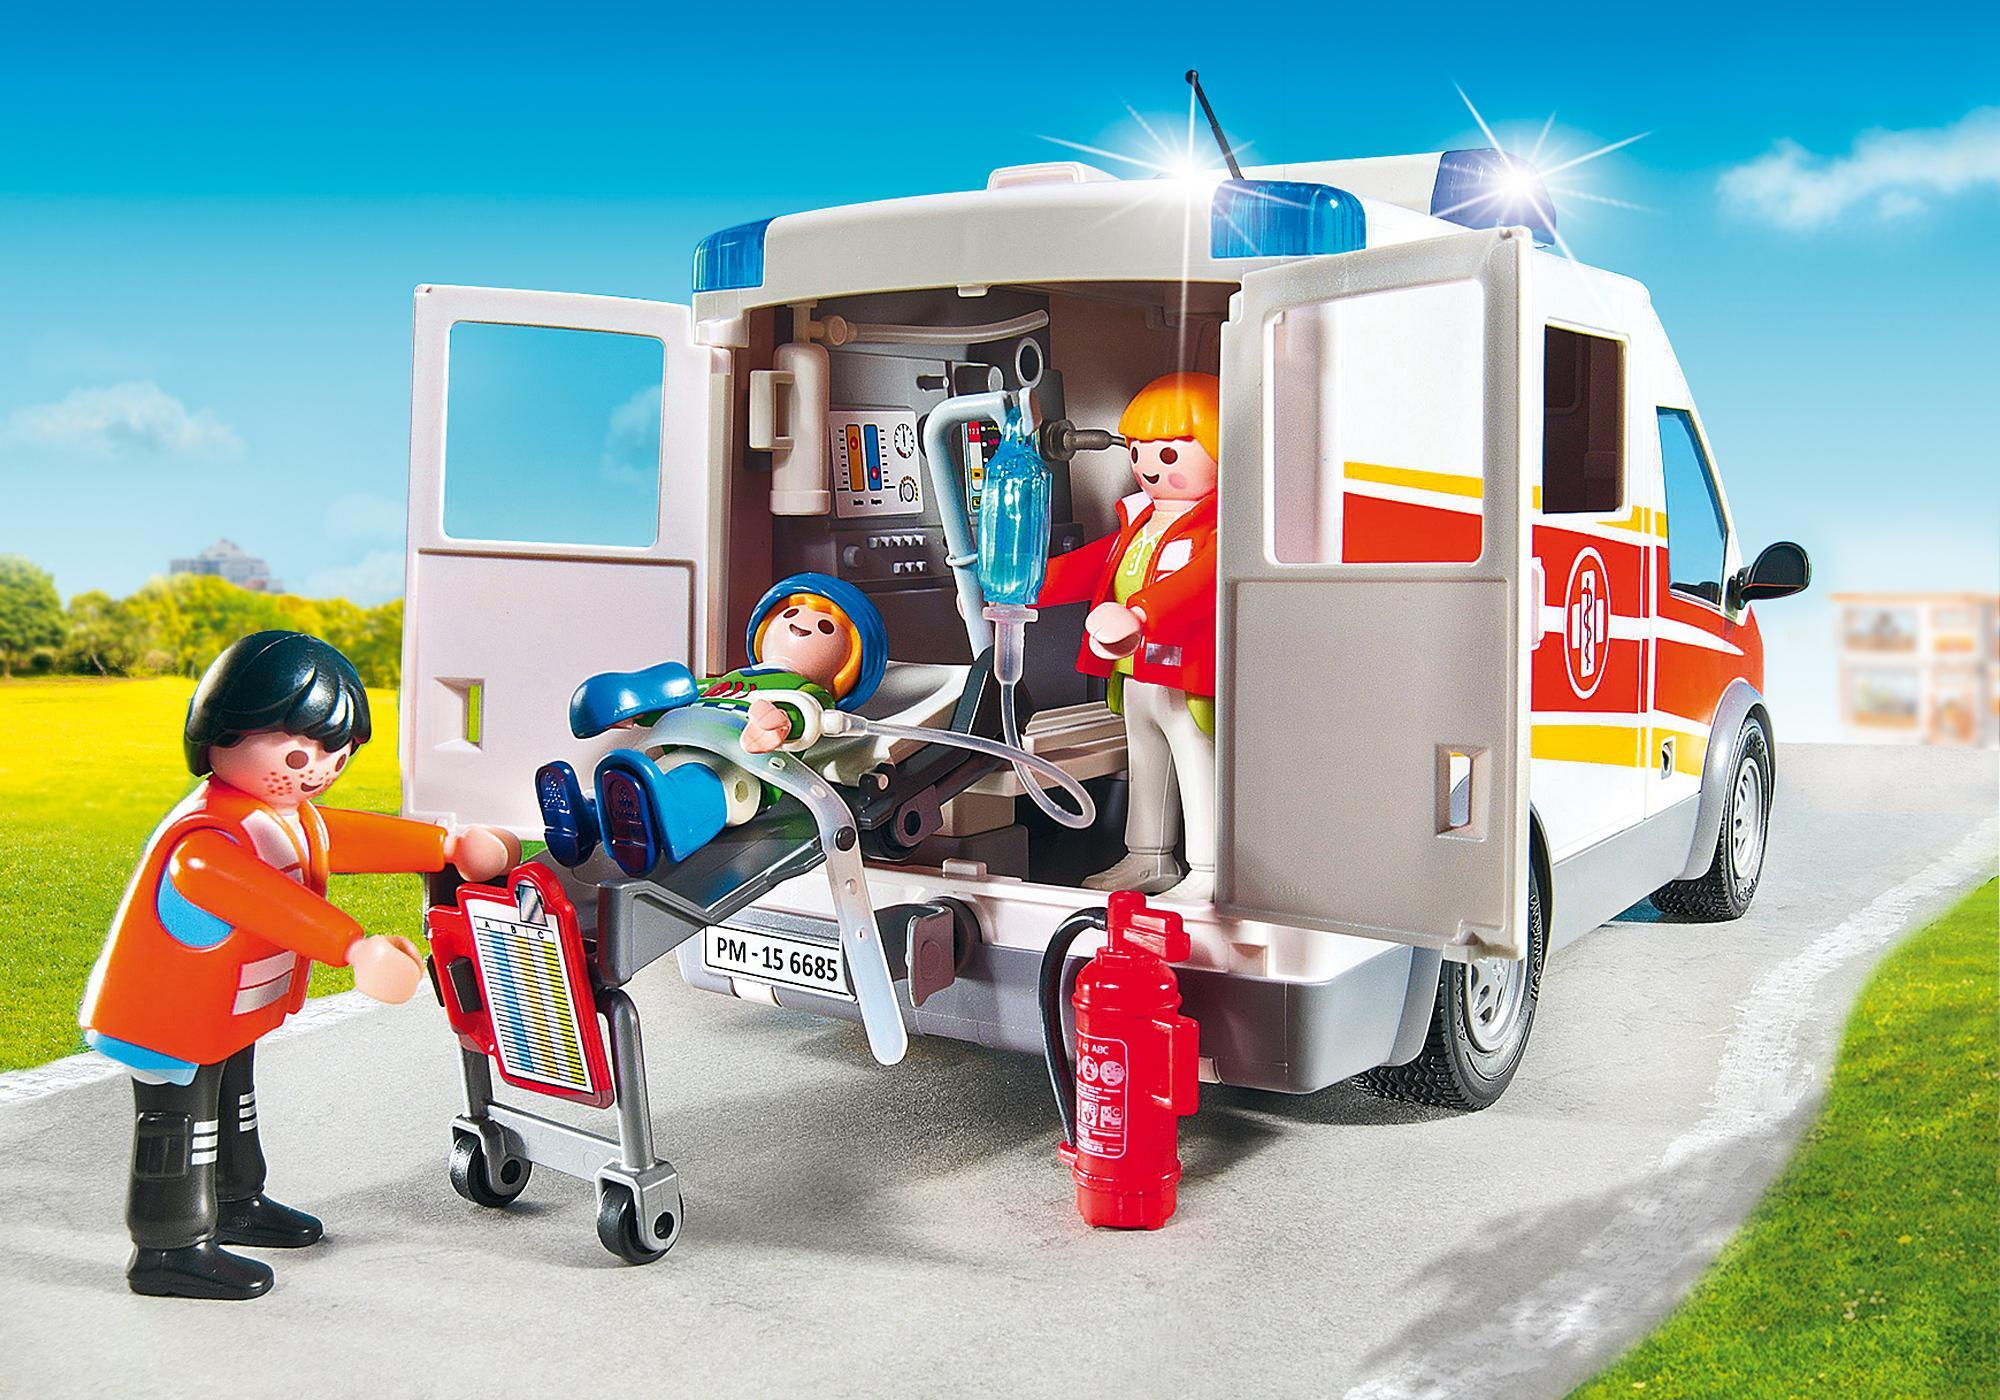 http://media.playmobil.com/i/playmobil/6685_product_extra2/Ambulance with Lights and Sound